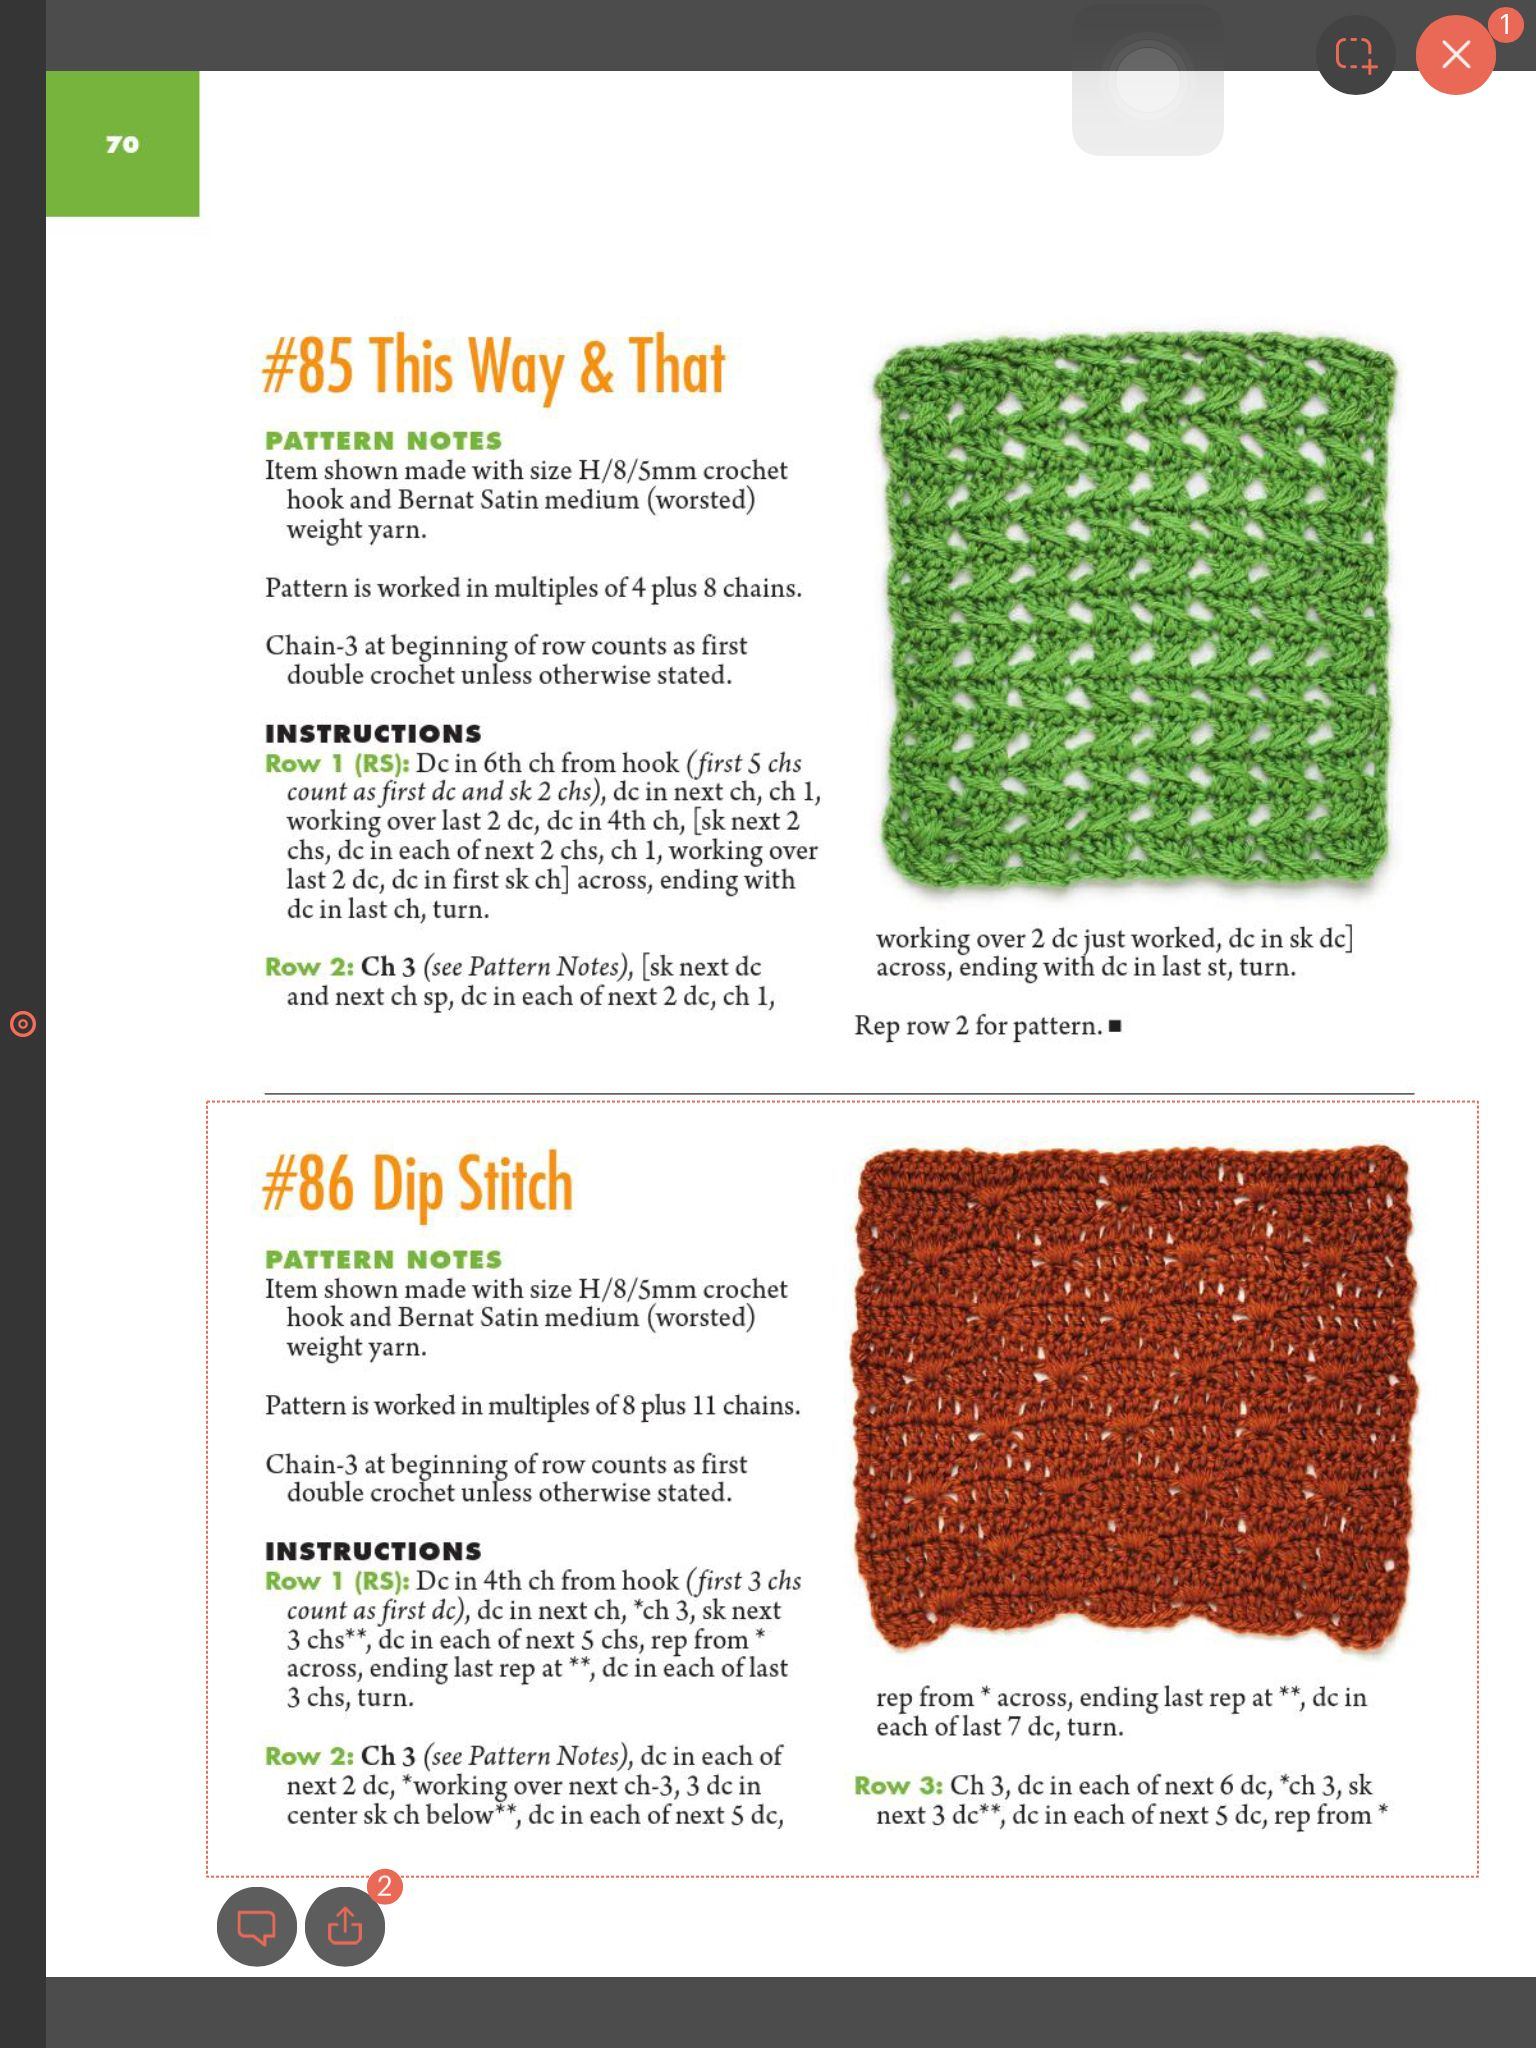 This Way And That Dip Stitch 1 Crochet Patterns Diagrams Double Diagram Easy Stitches